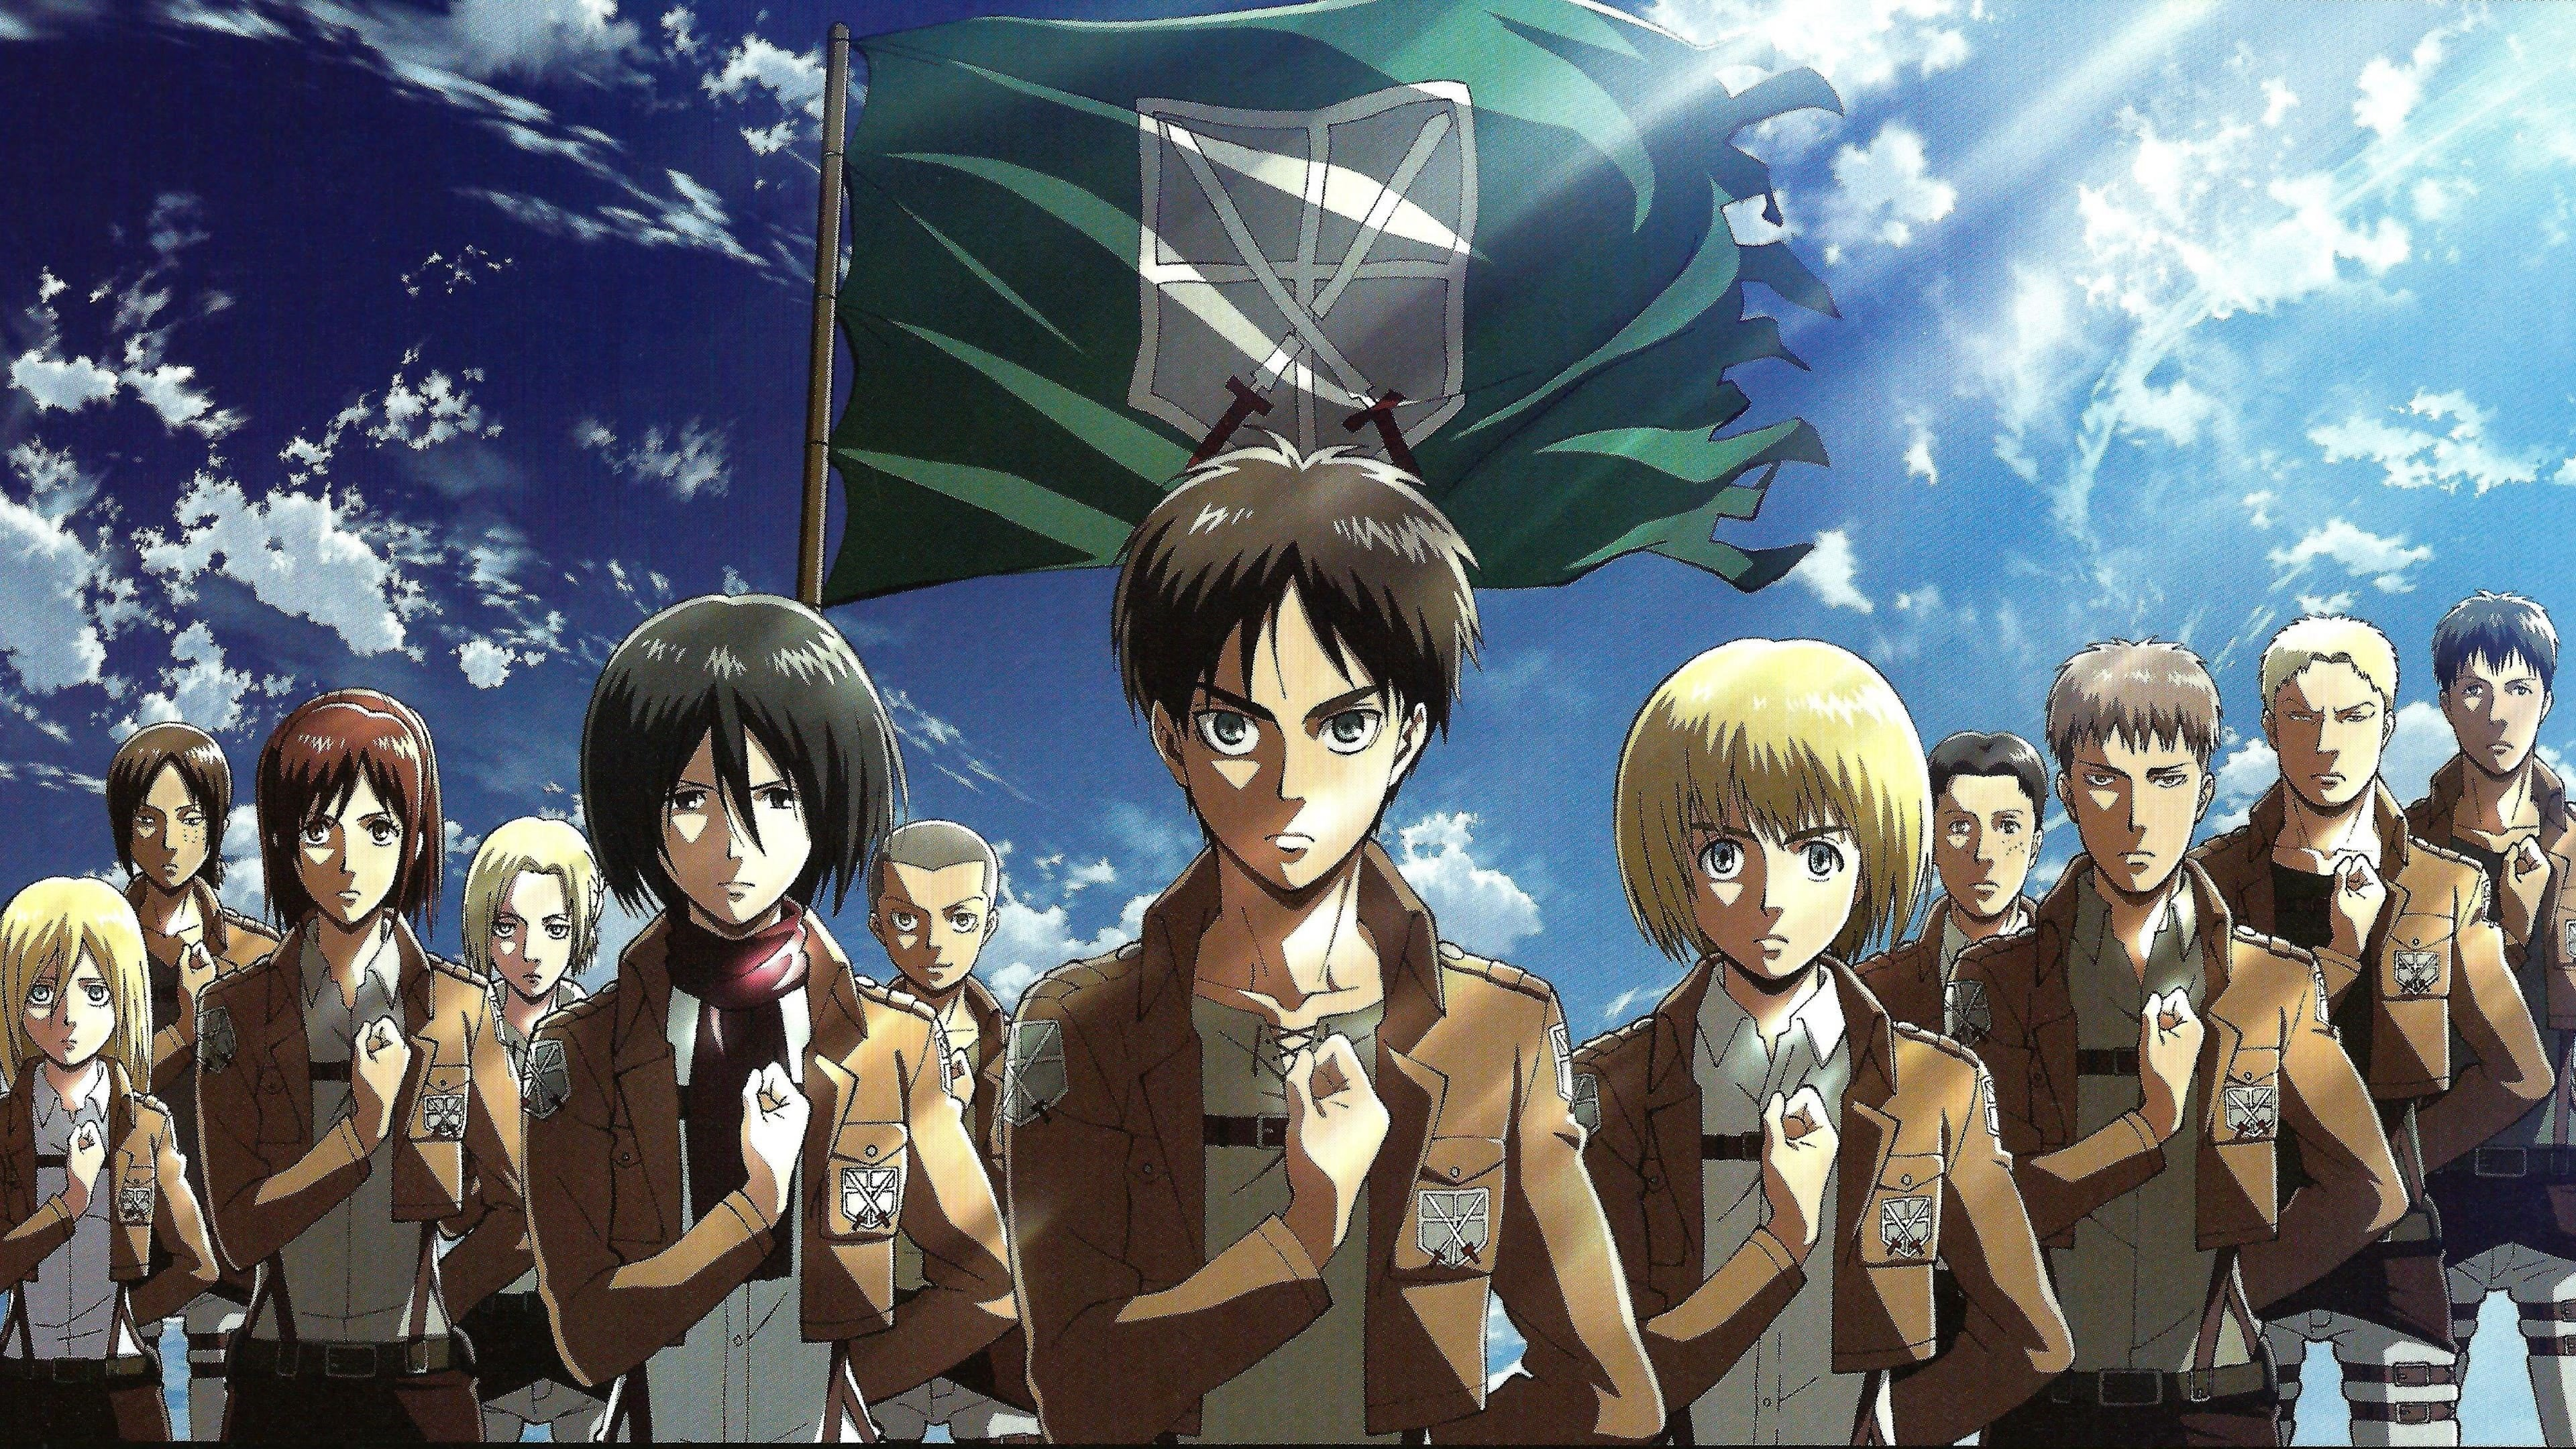 Attack on titan may be popular but how much do you actually know about the series? Attack on Titan Wallpapers (71+ images)